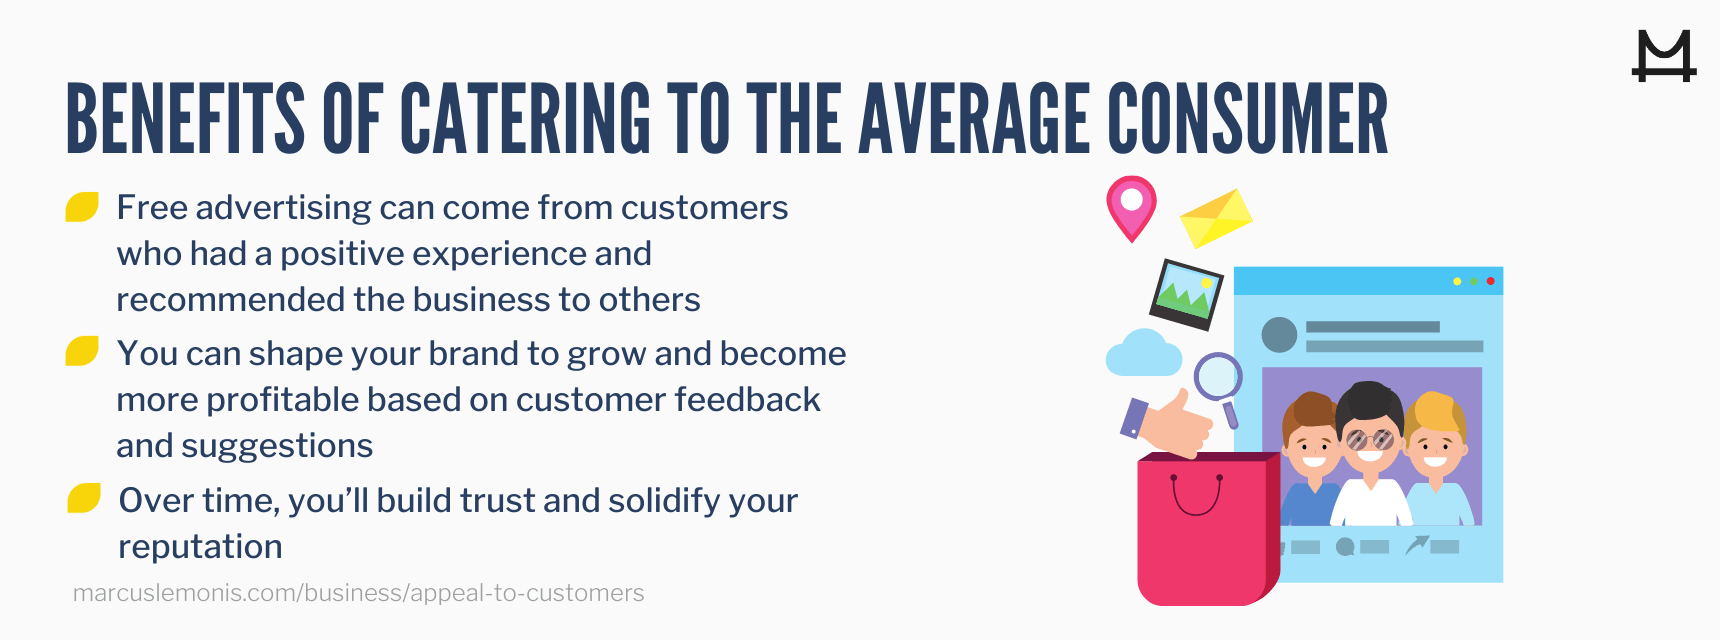 List of benefits of catering to the average consumer